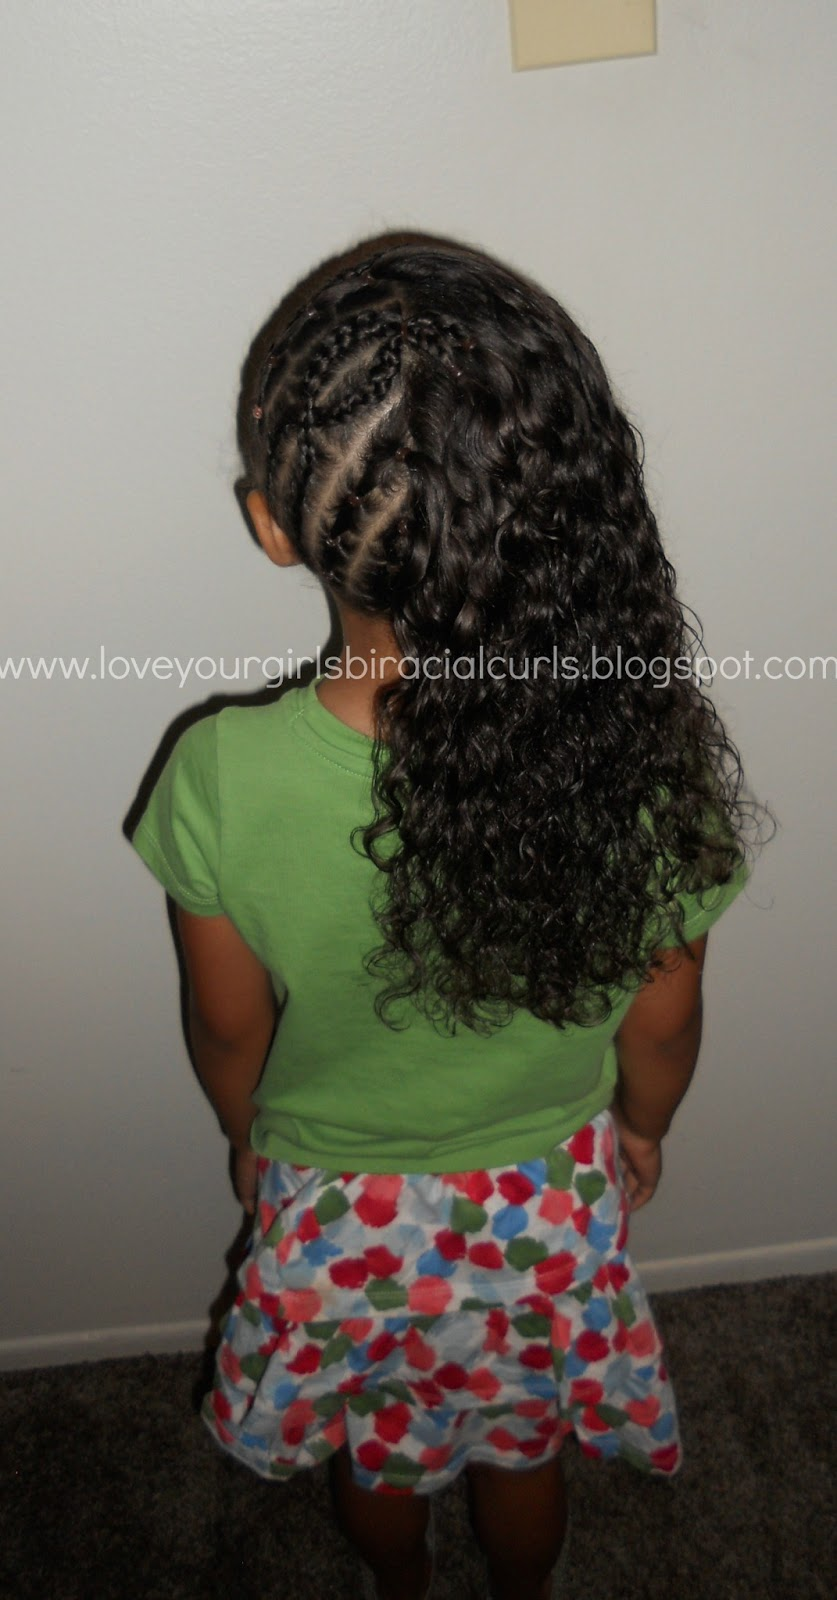 Brilliant Love Your Girls Biracial Curls Cute School Hair Style For Girls Short Hairstyles Gunalazisus